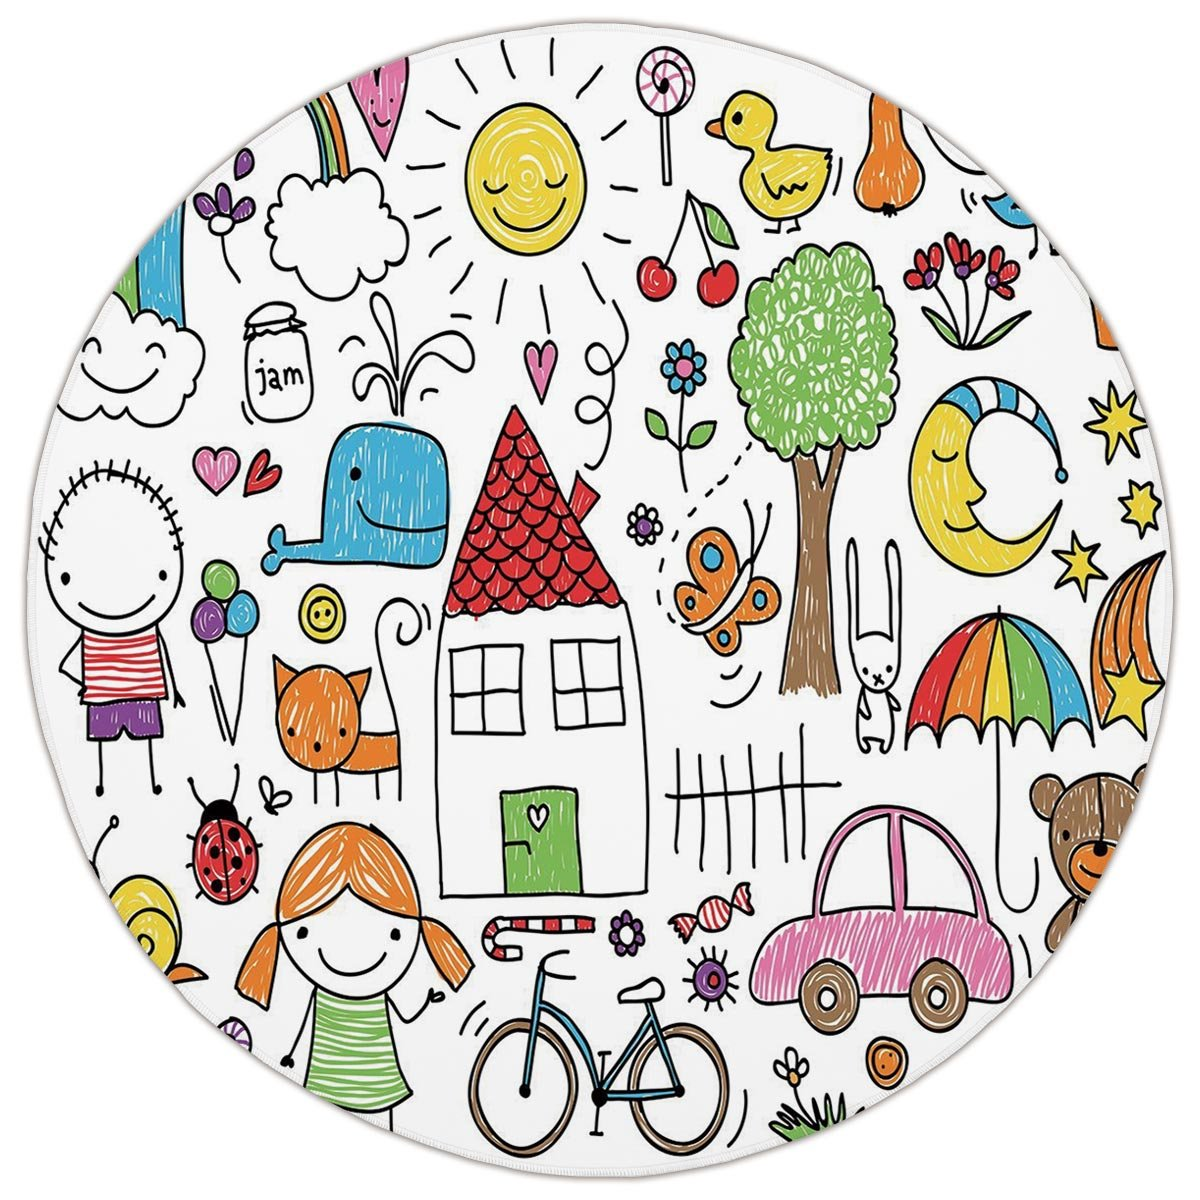 1200x1200 round area rug mat rug,doodle,simple childlike drawing